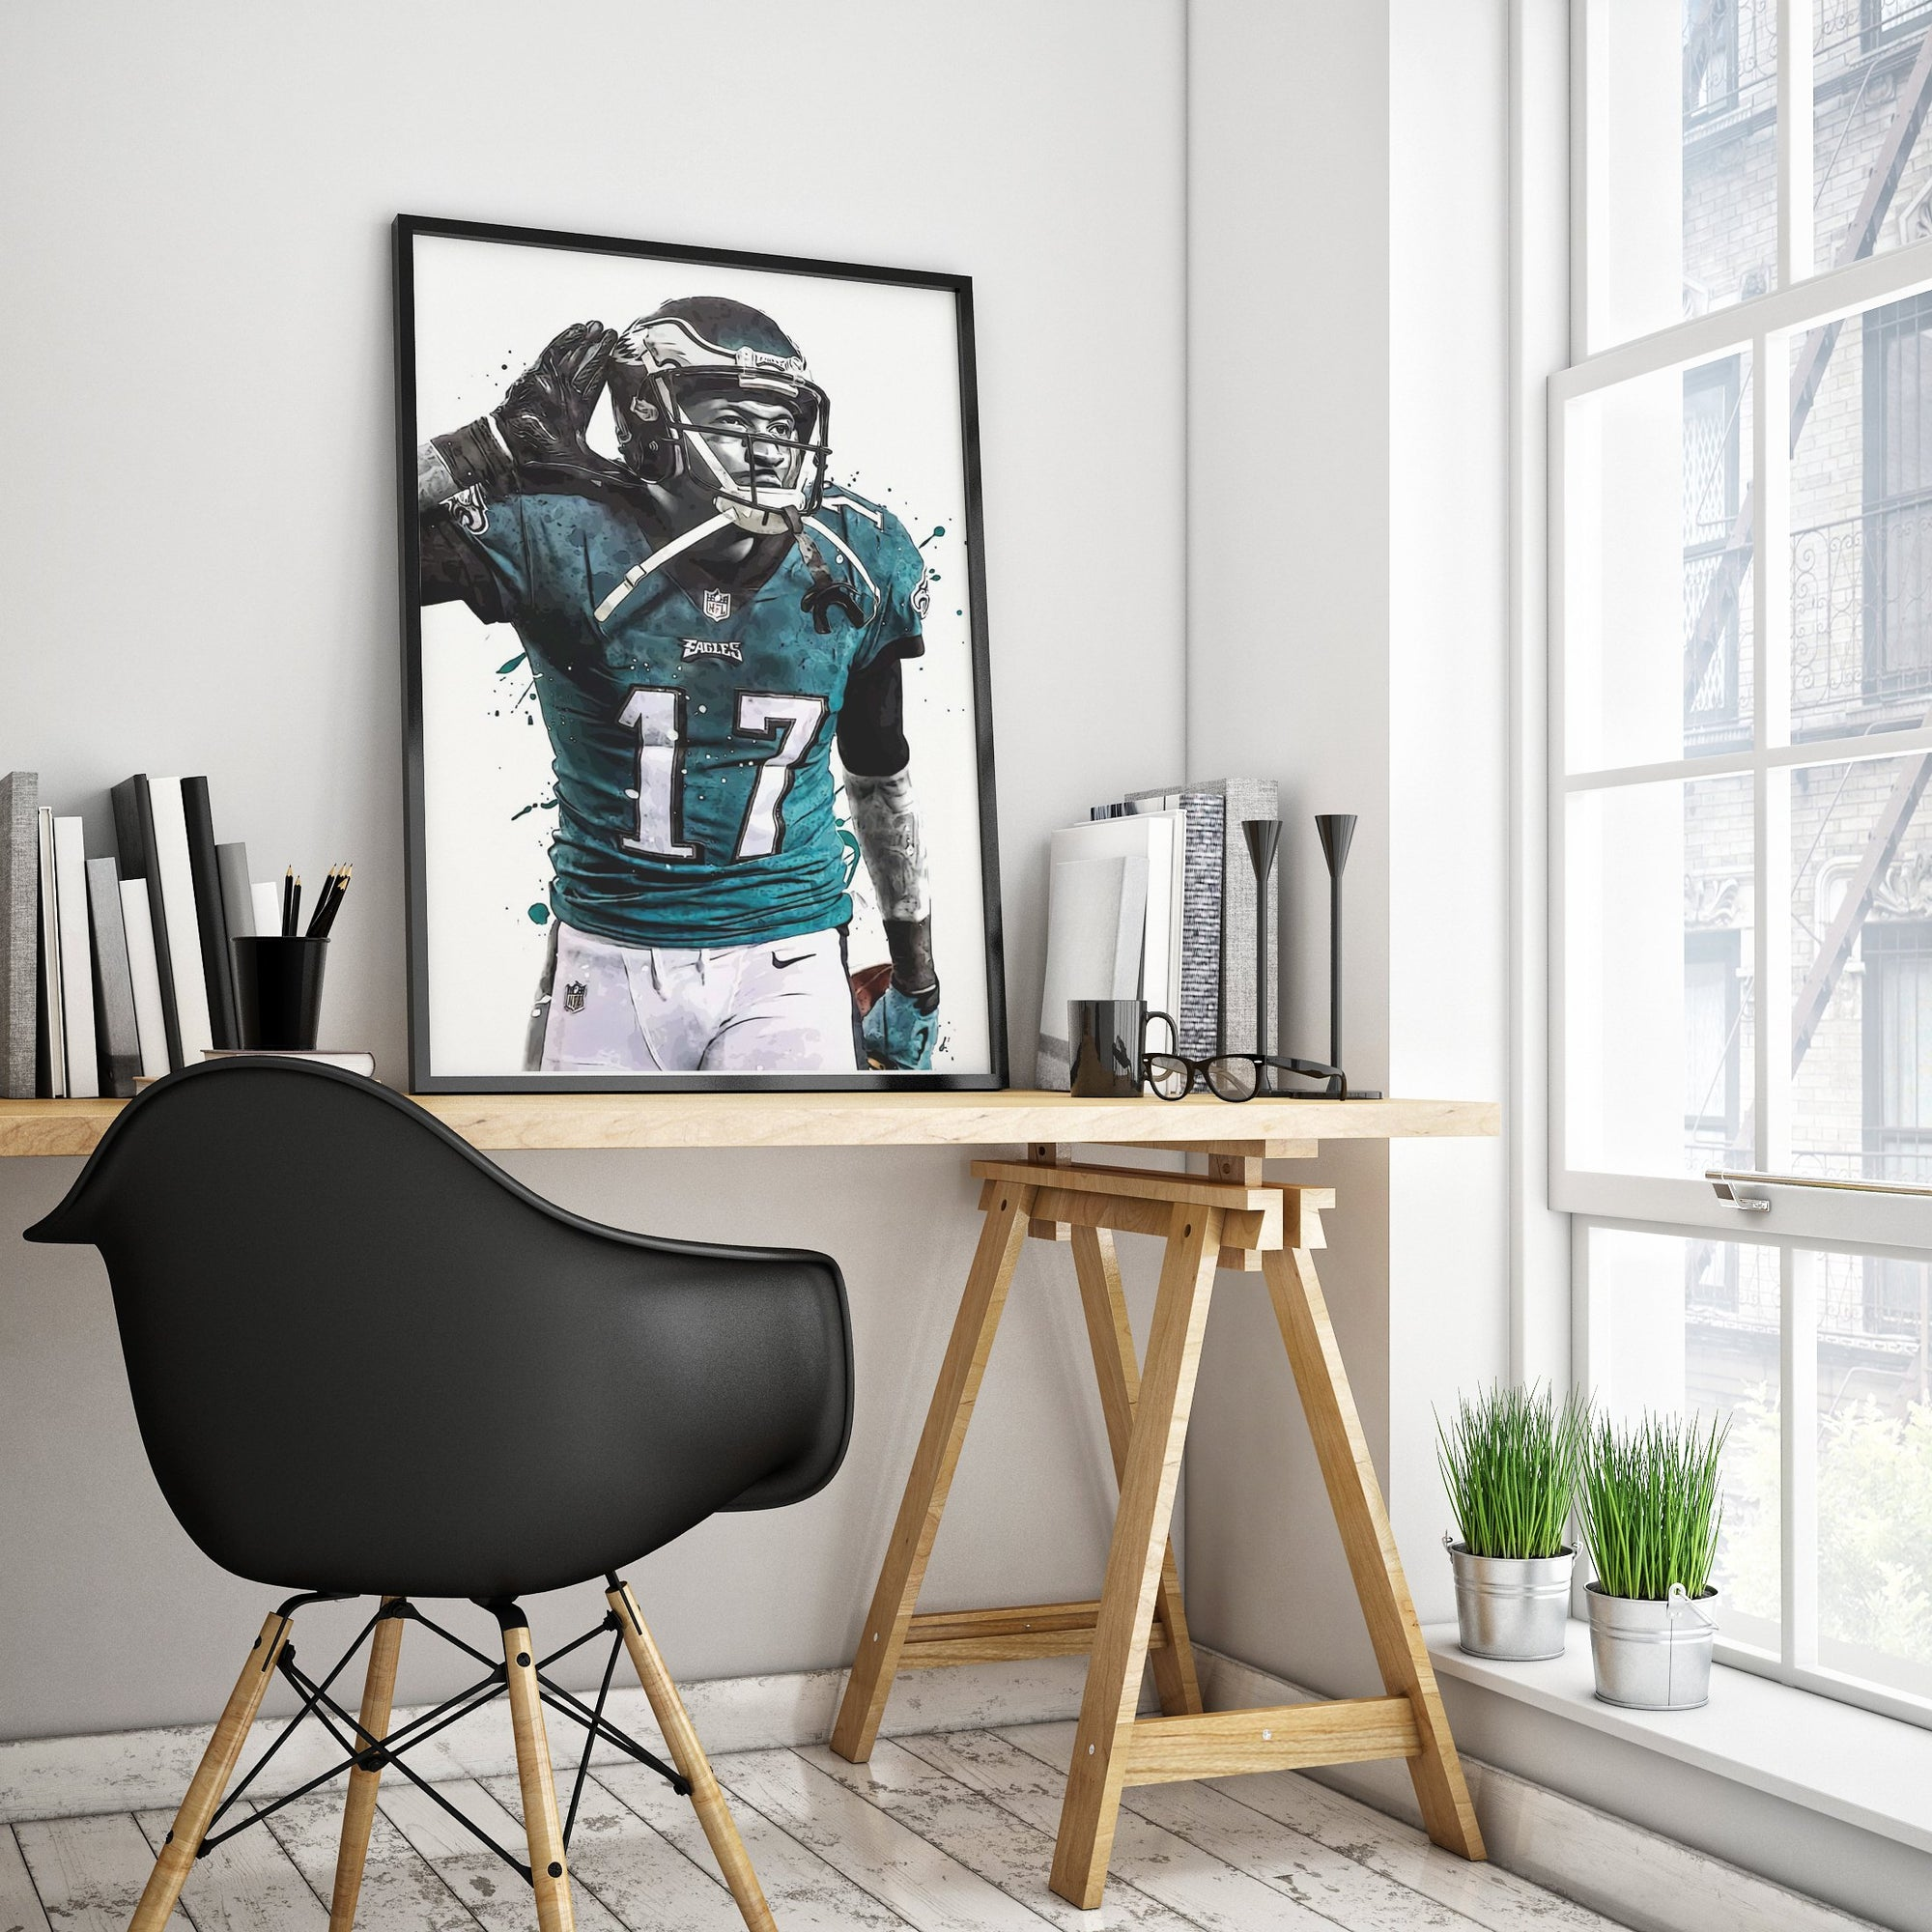 ALSHON JEFFERY-Home Decor-JD Odds & Ends